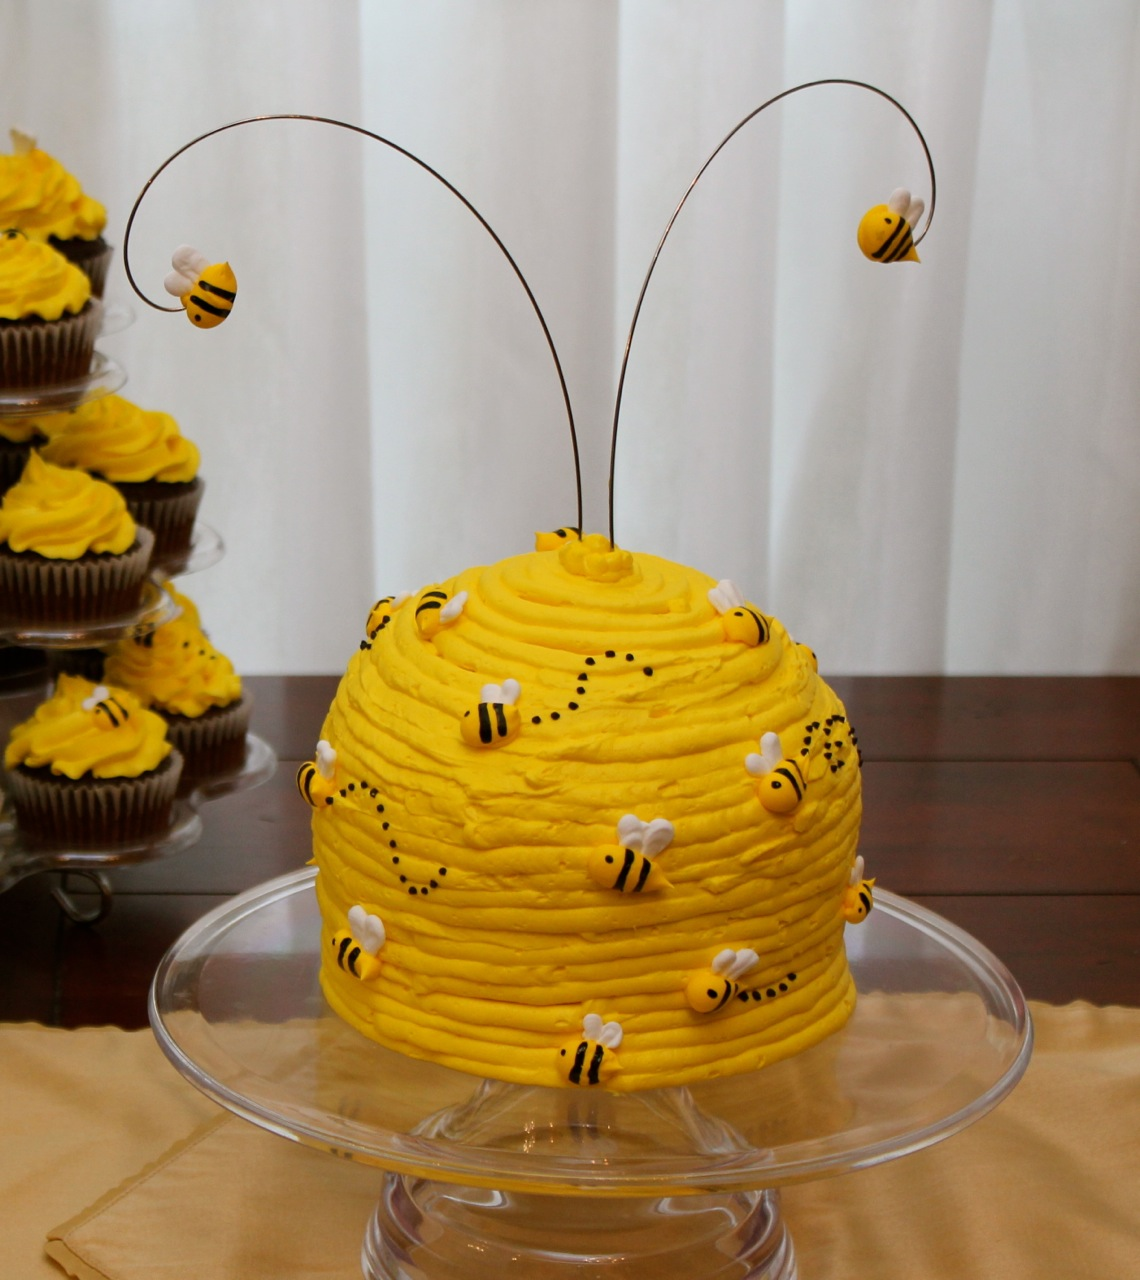 Of All The Cakes Ive Made This Is My Favorite One I Love Shape Flying Bees And Their Little Black Royal Icing Flight Patterns